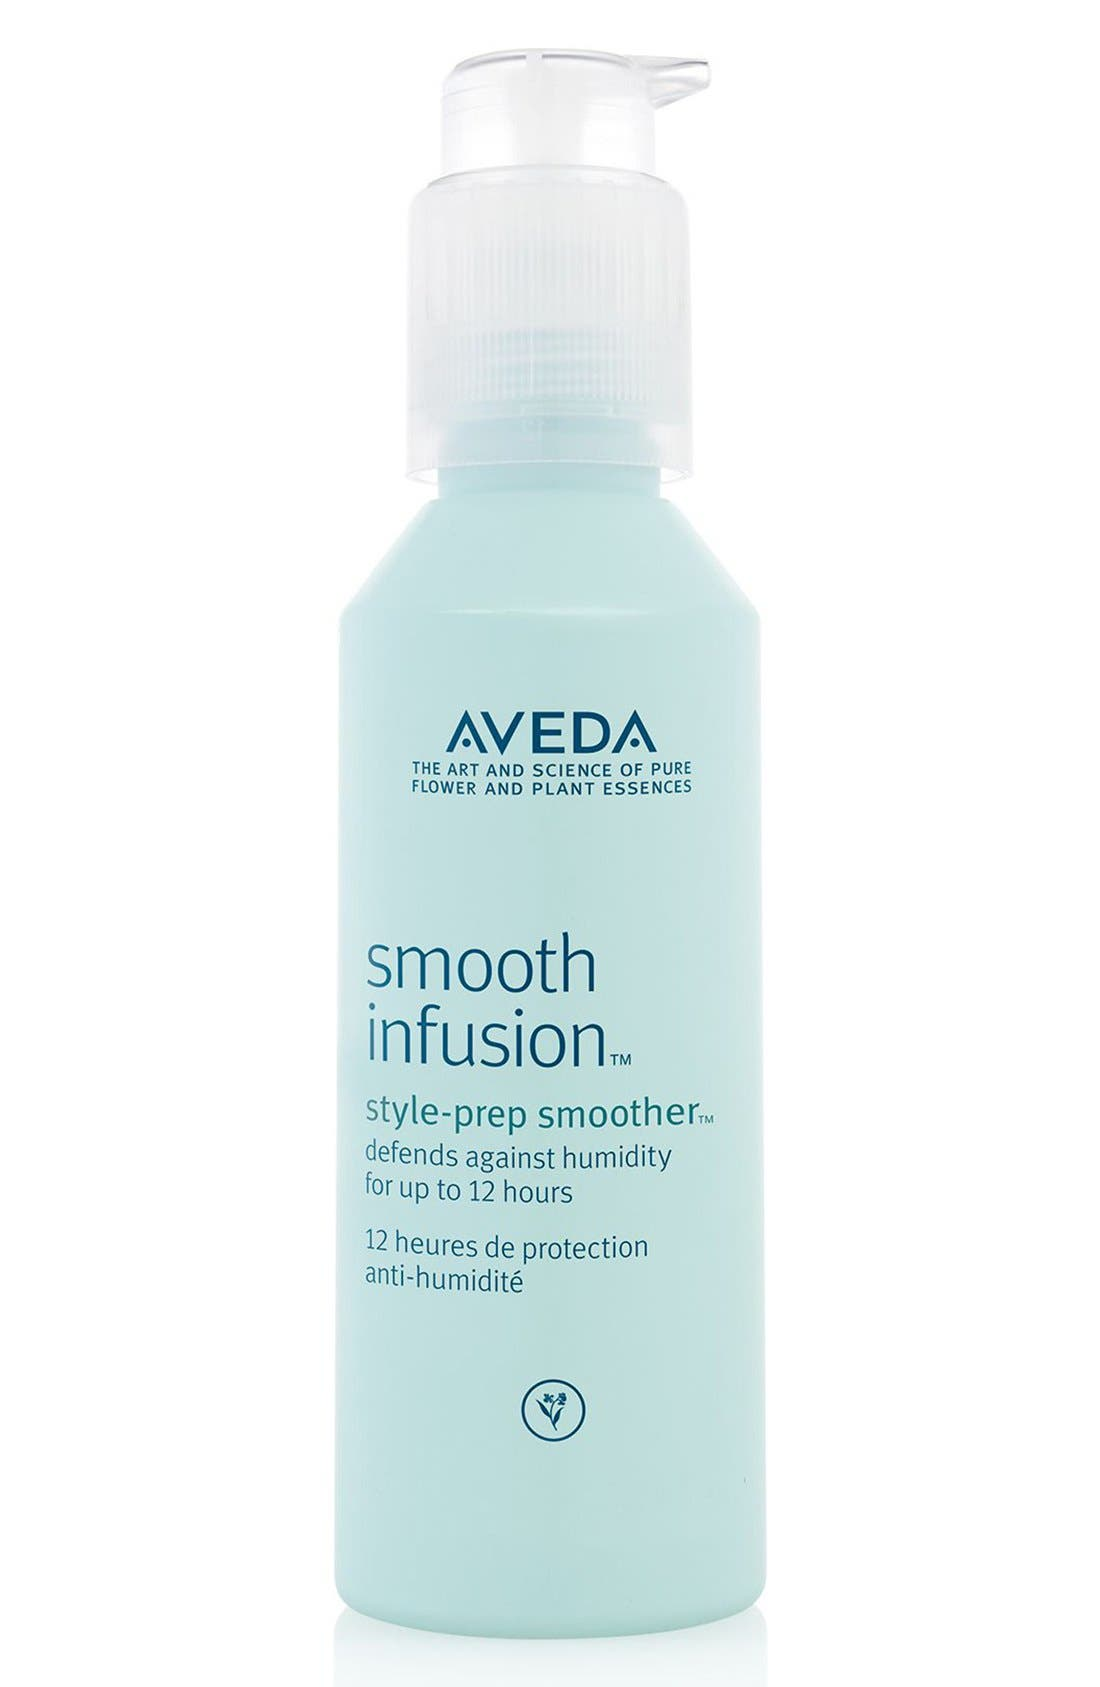 Aveda 'smooth infusion™' style-prep smoother™